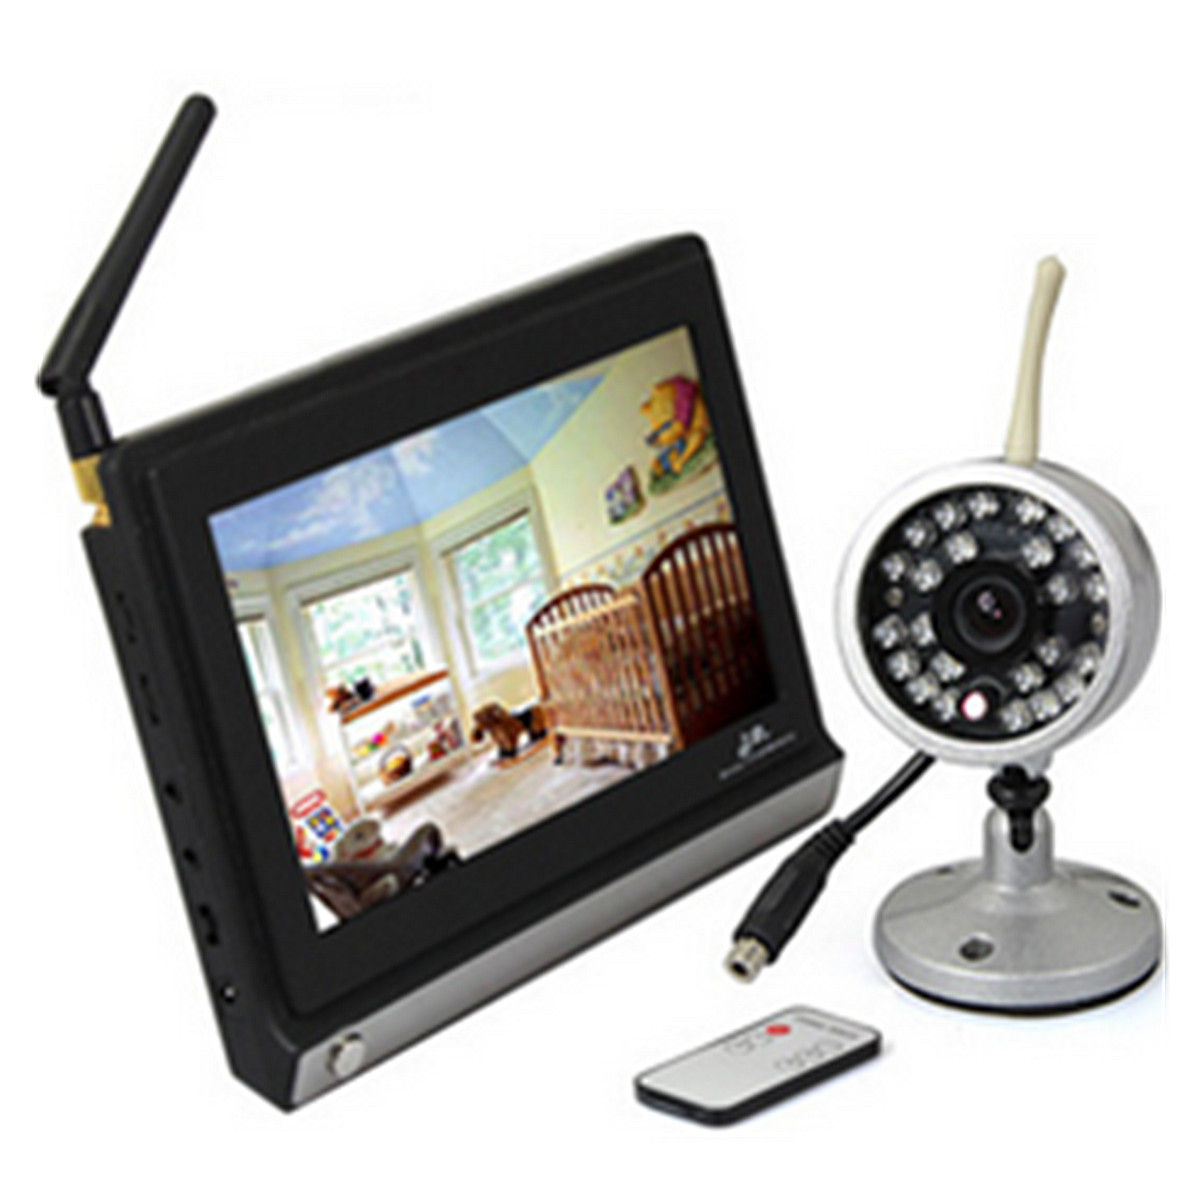 7inch TFT LCD Screen Digital Wireless Video Remote Camera Baby Monitor Night Vision Security Cameras